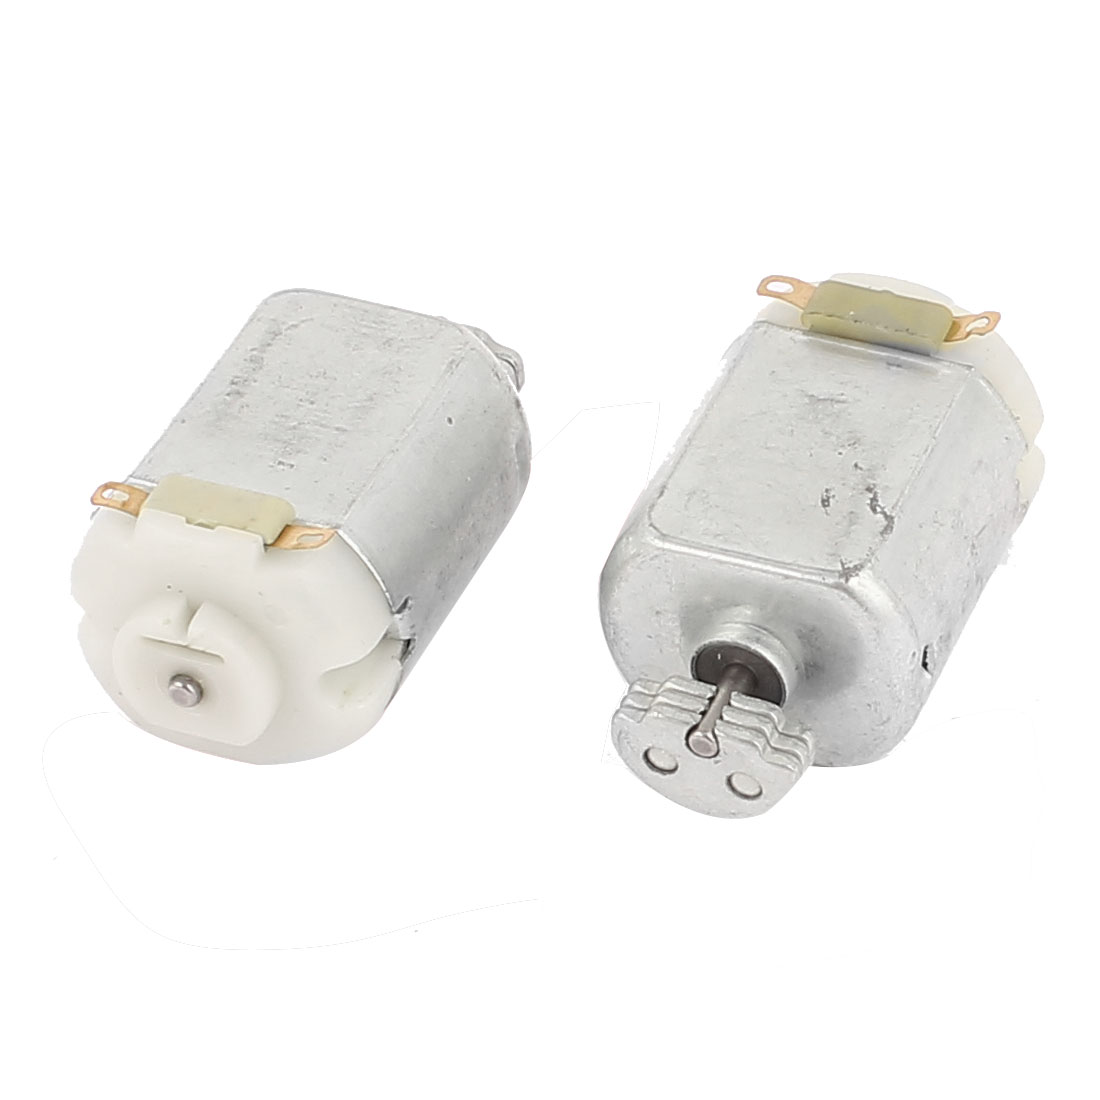 2PCS DC 3V 5000RPM Rotary High Speed Electric Mini Motor for RC Boat Model Toys DIY